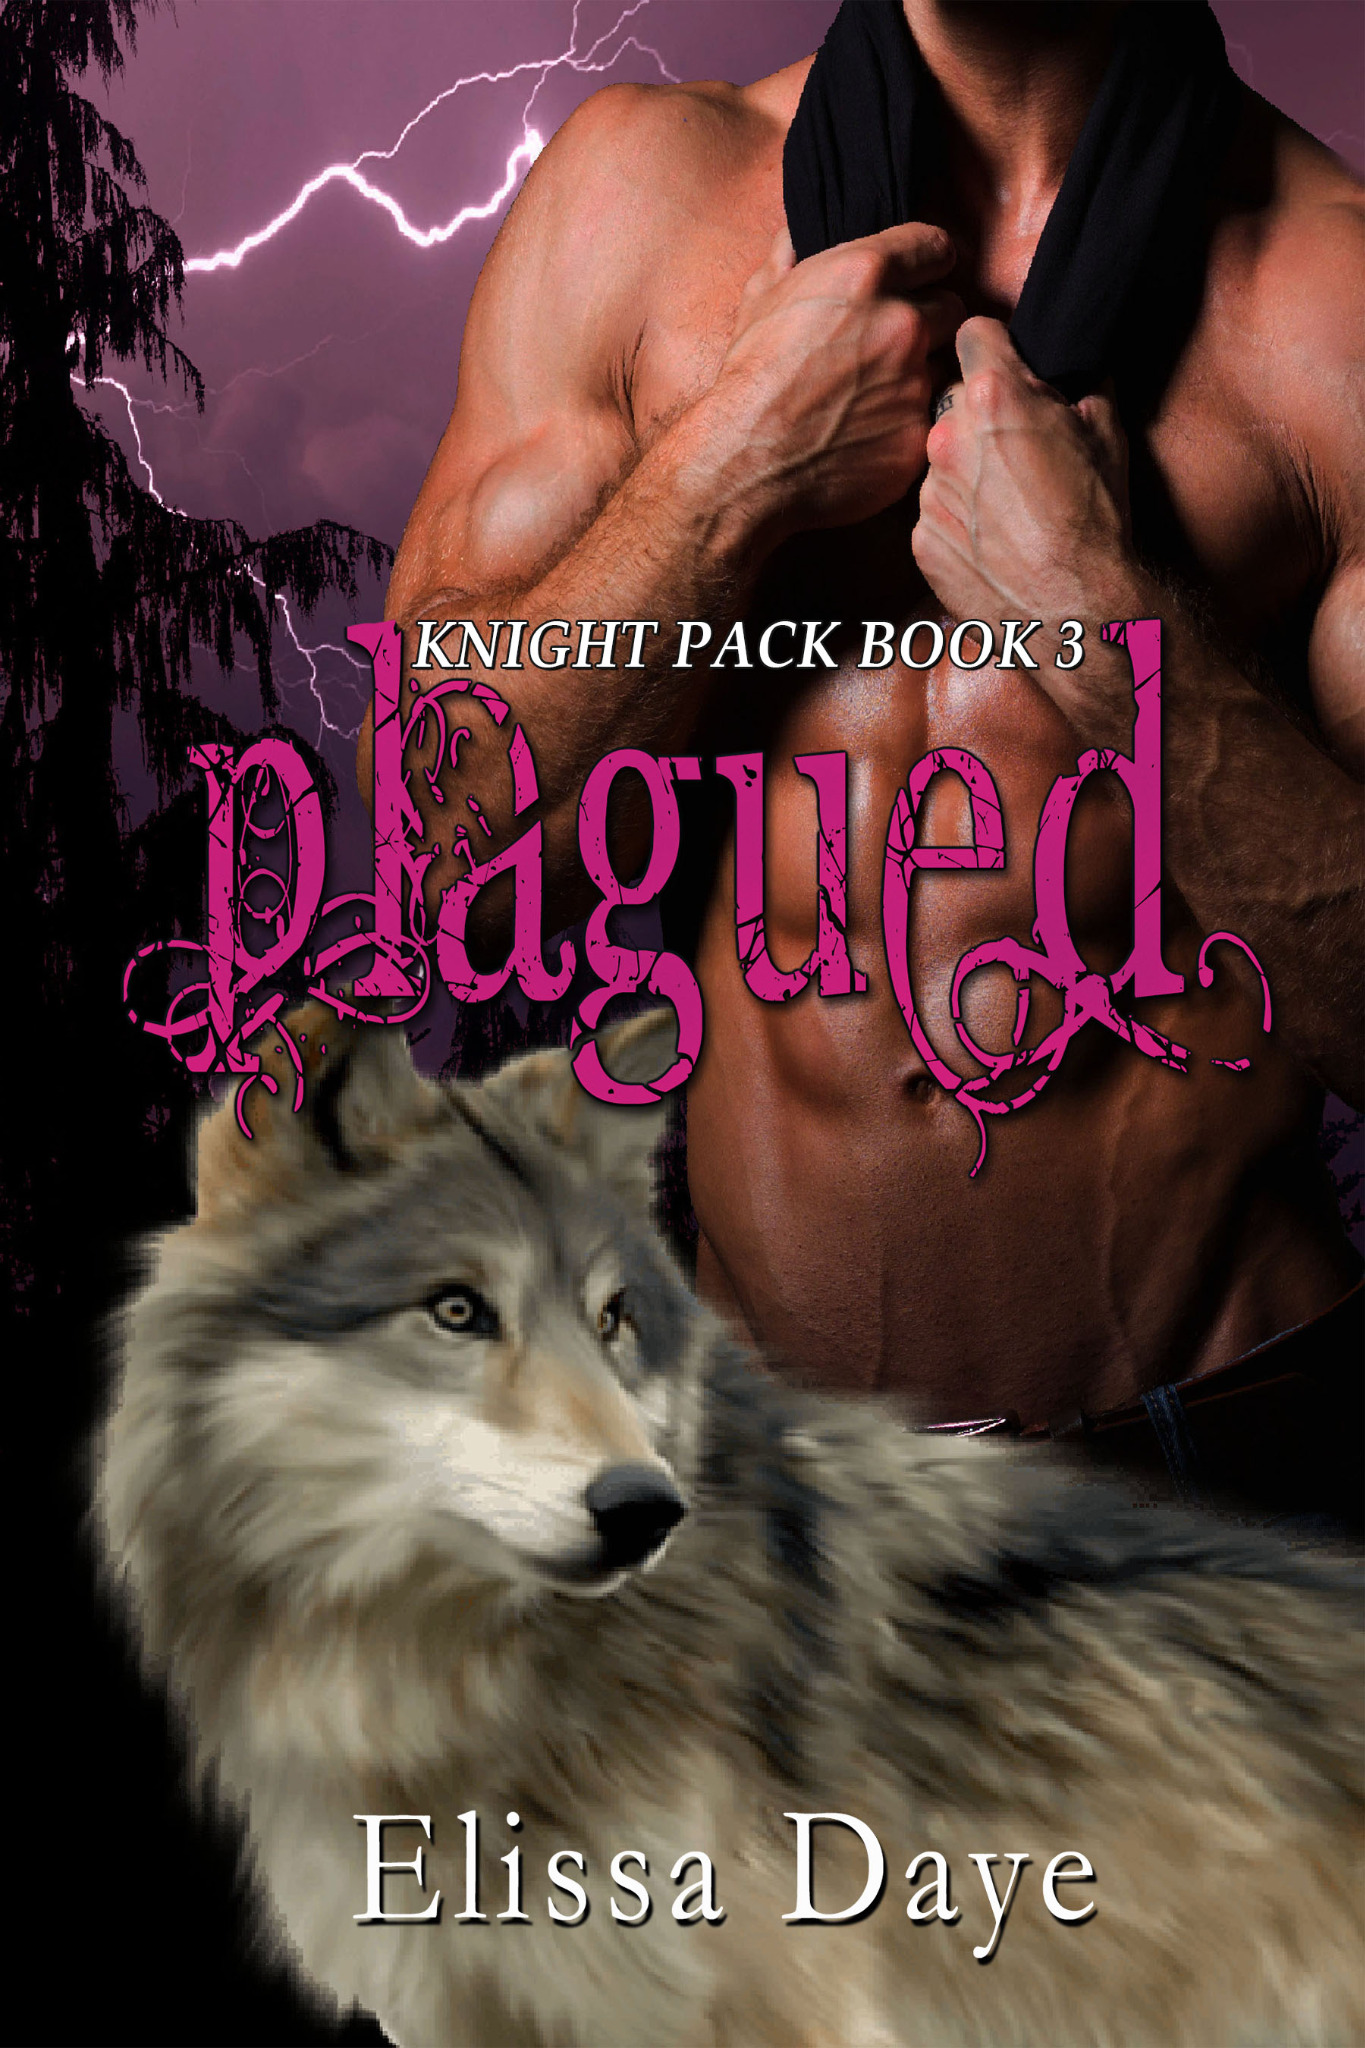 Plagued - Knight Pack Book 3